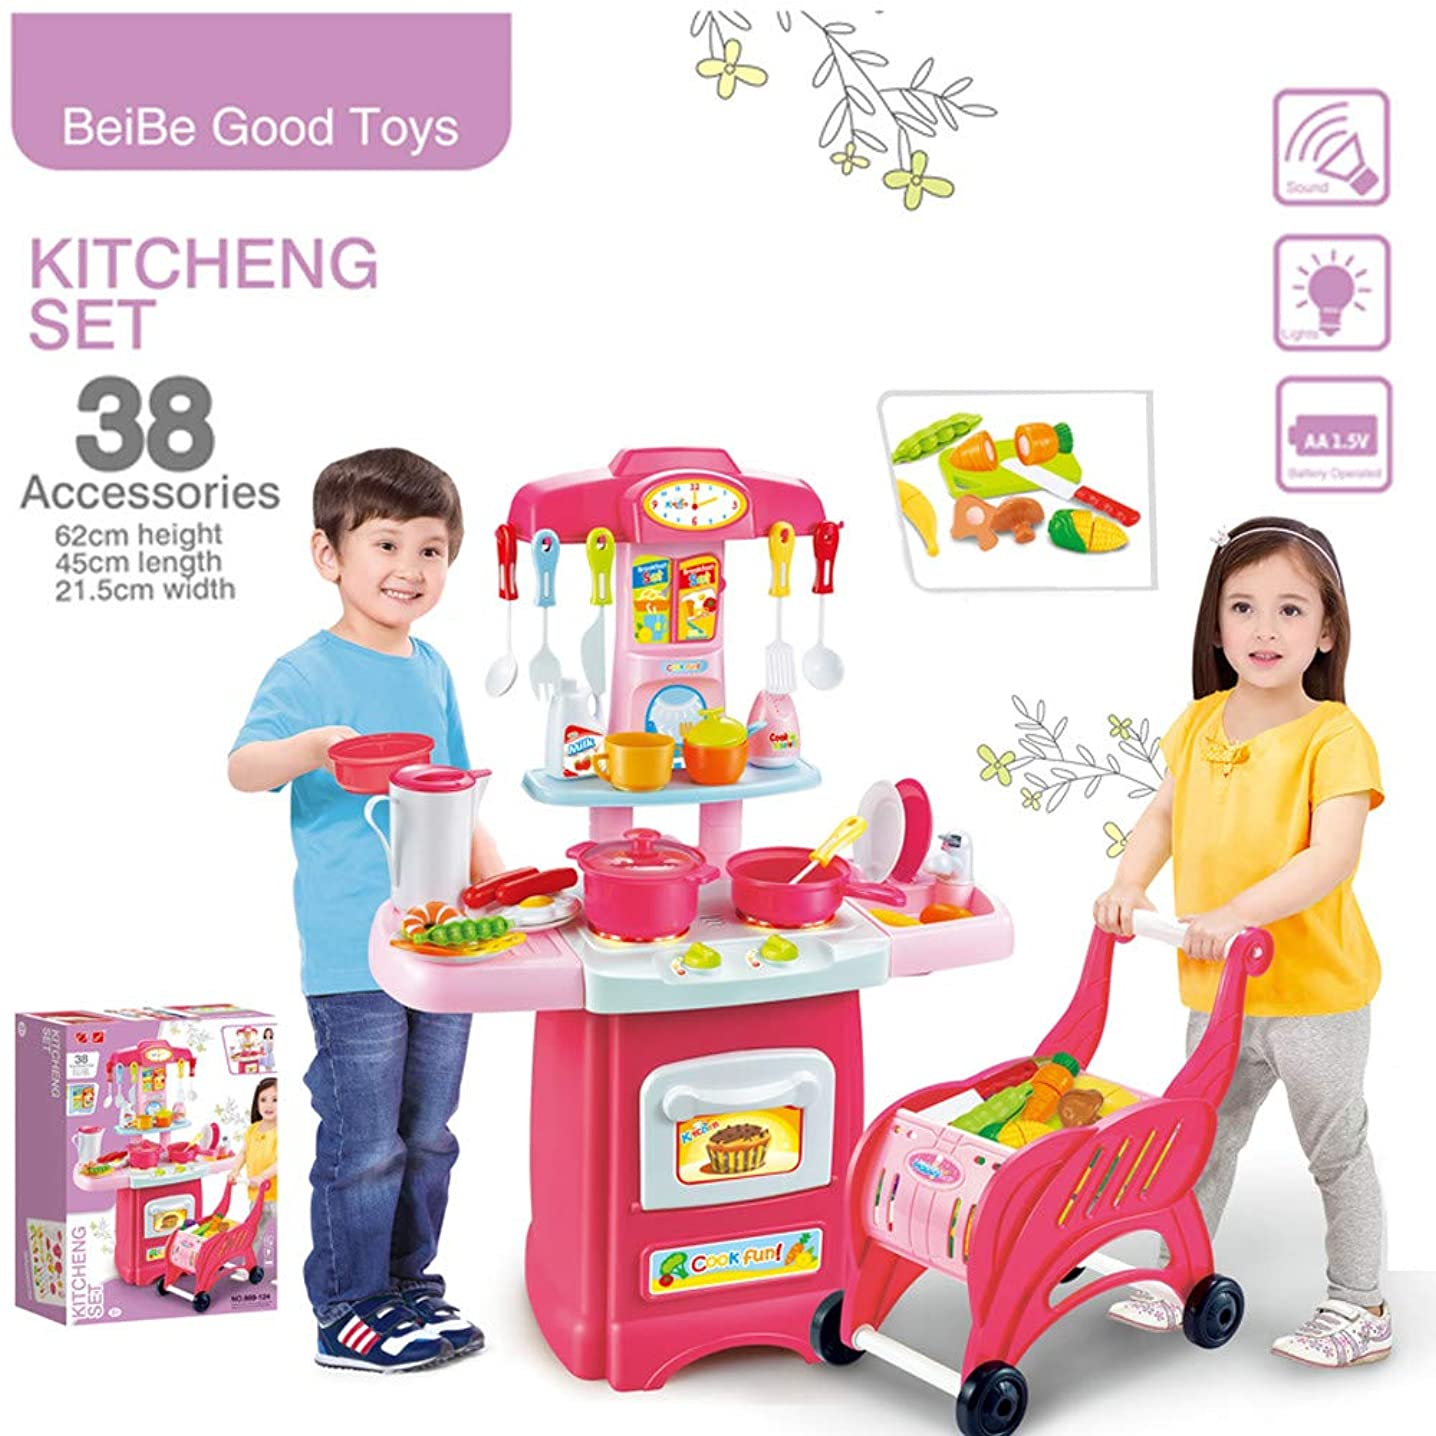 US Fast Shipment &Clearance ??Tuscom Toys Electronic Kitchen Set and Shopping Cart Chess Set,21.65x5.11x15.35in for Boy Girl Kids Fun and Education Holiday Birthday Gift (Colorful)